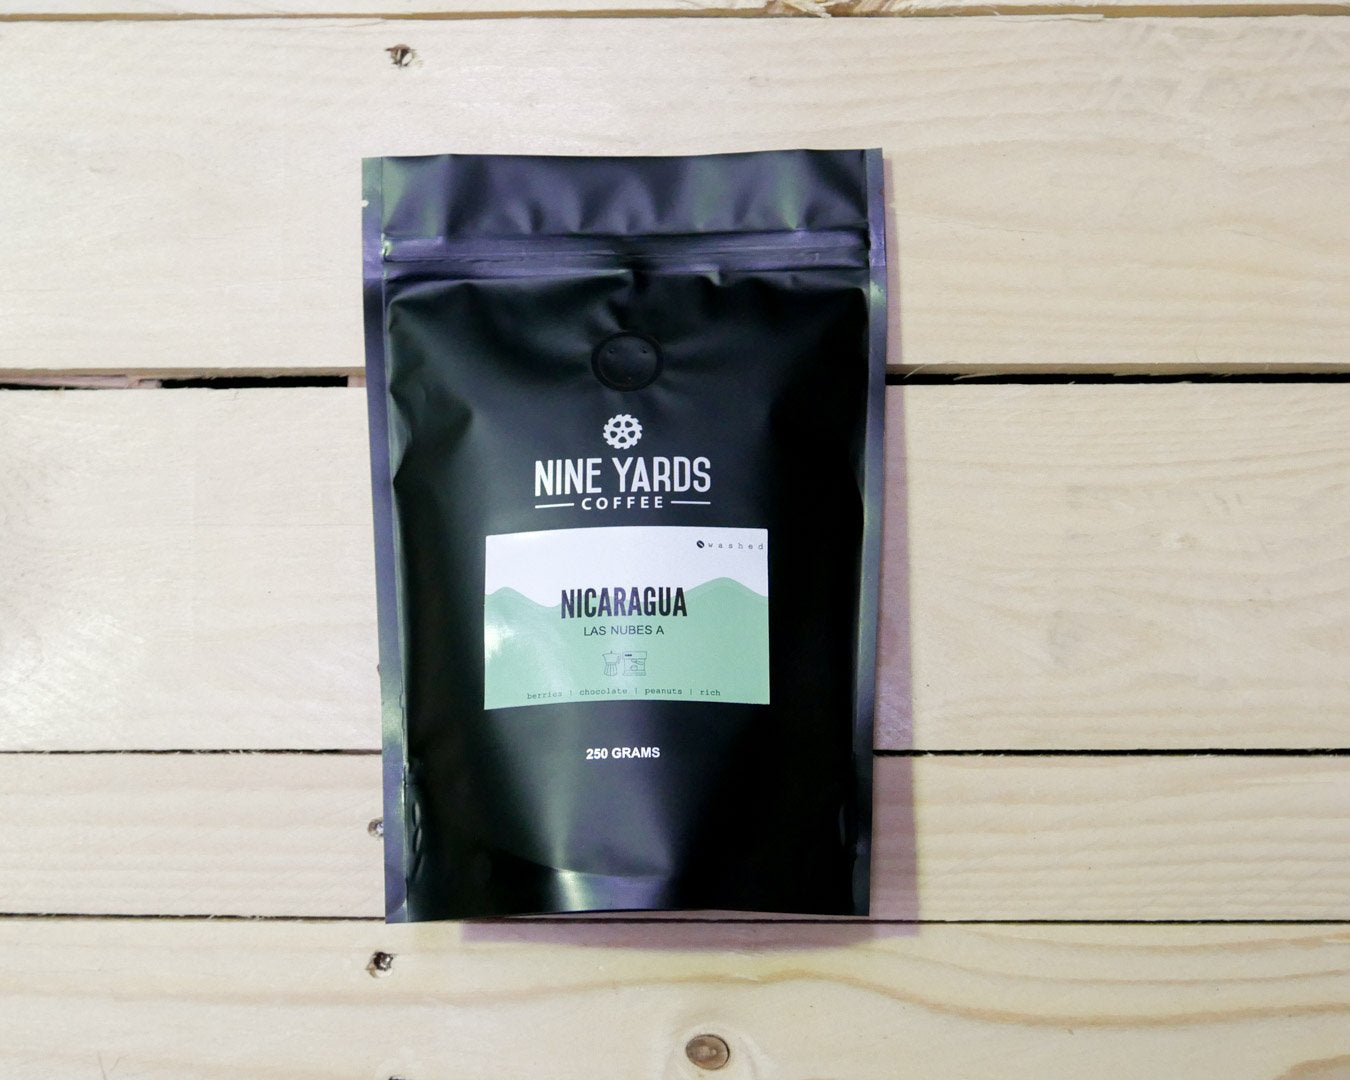 Nicaragua Las Nubes A 250g | Nine Yards Coffee | Northern Beaches, Sydney